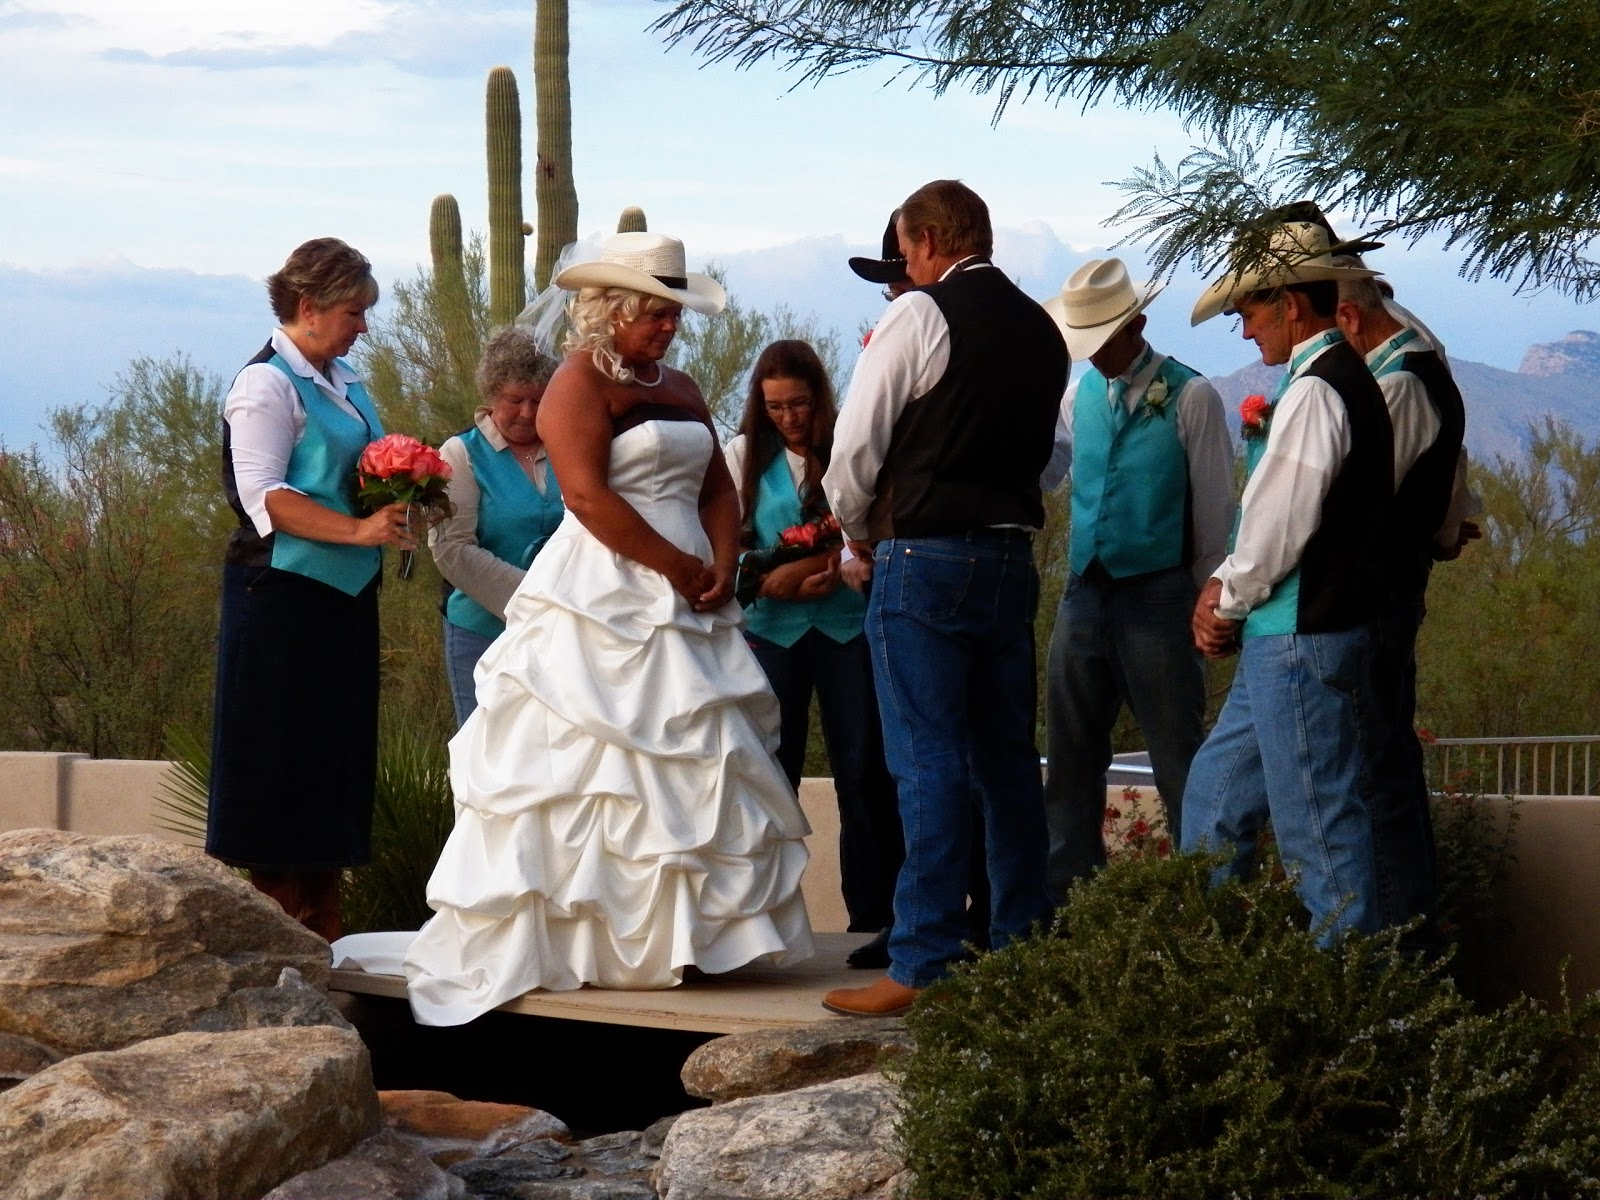 My aunt's country Western-themed wedding in Tucson, AZ